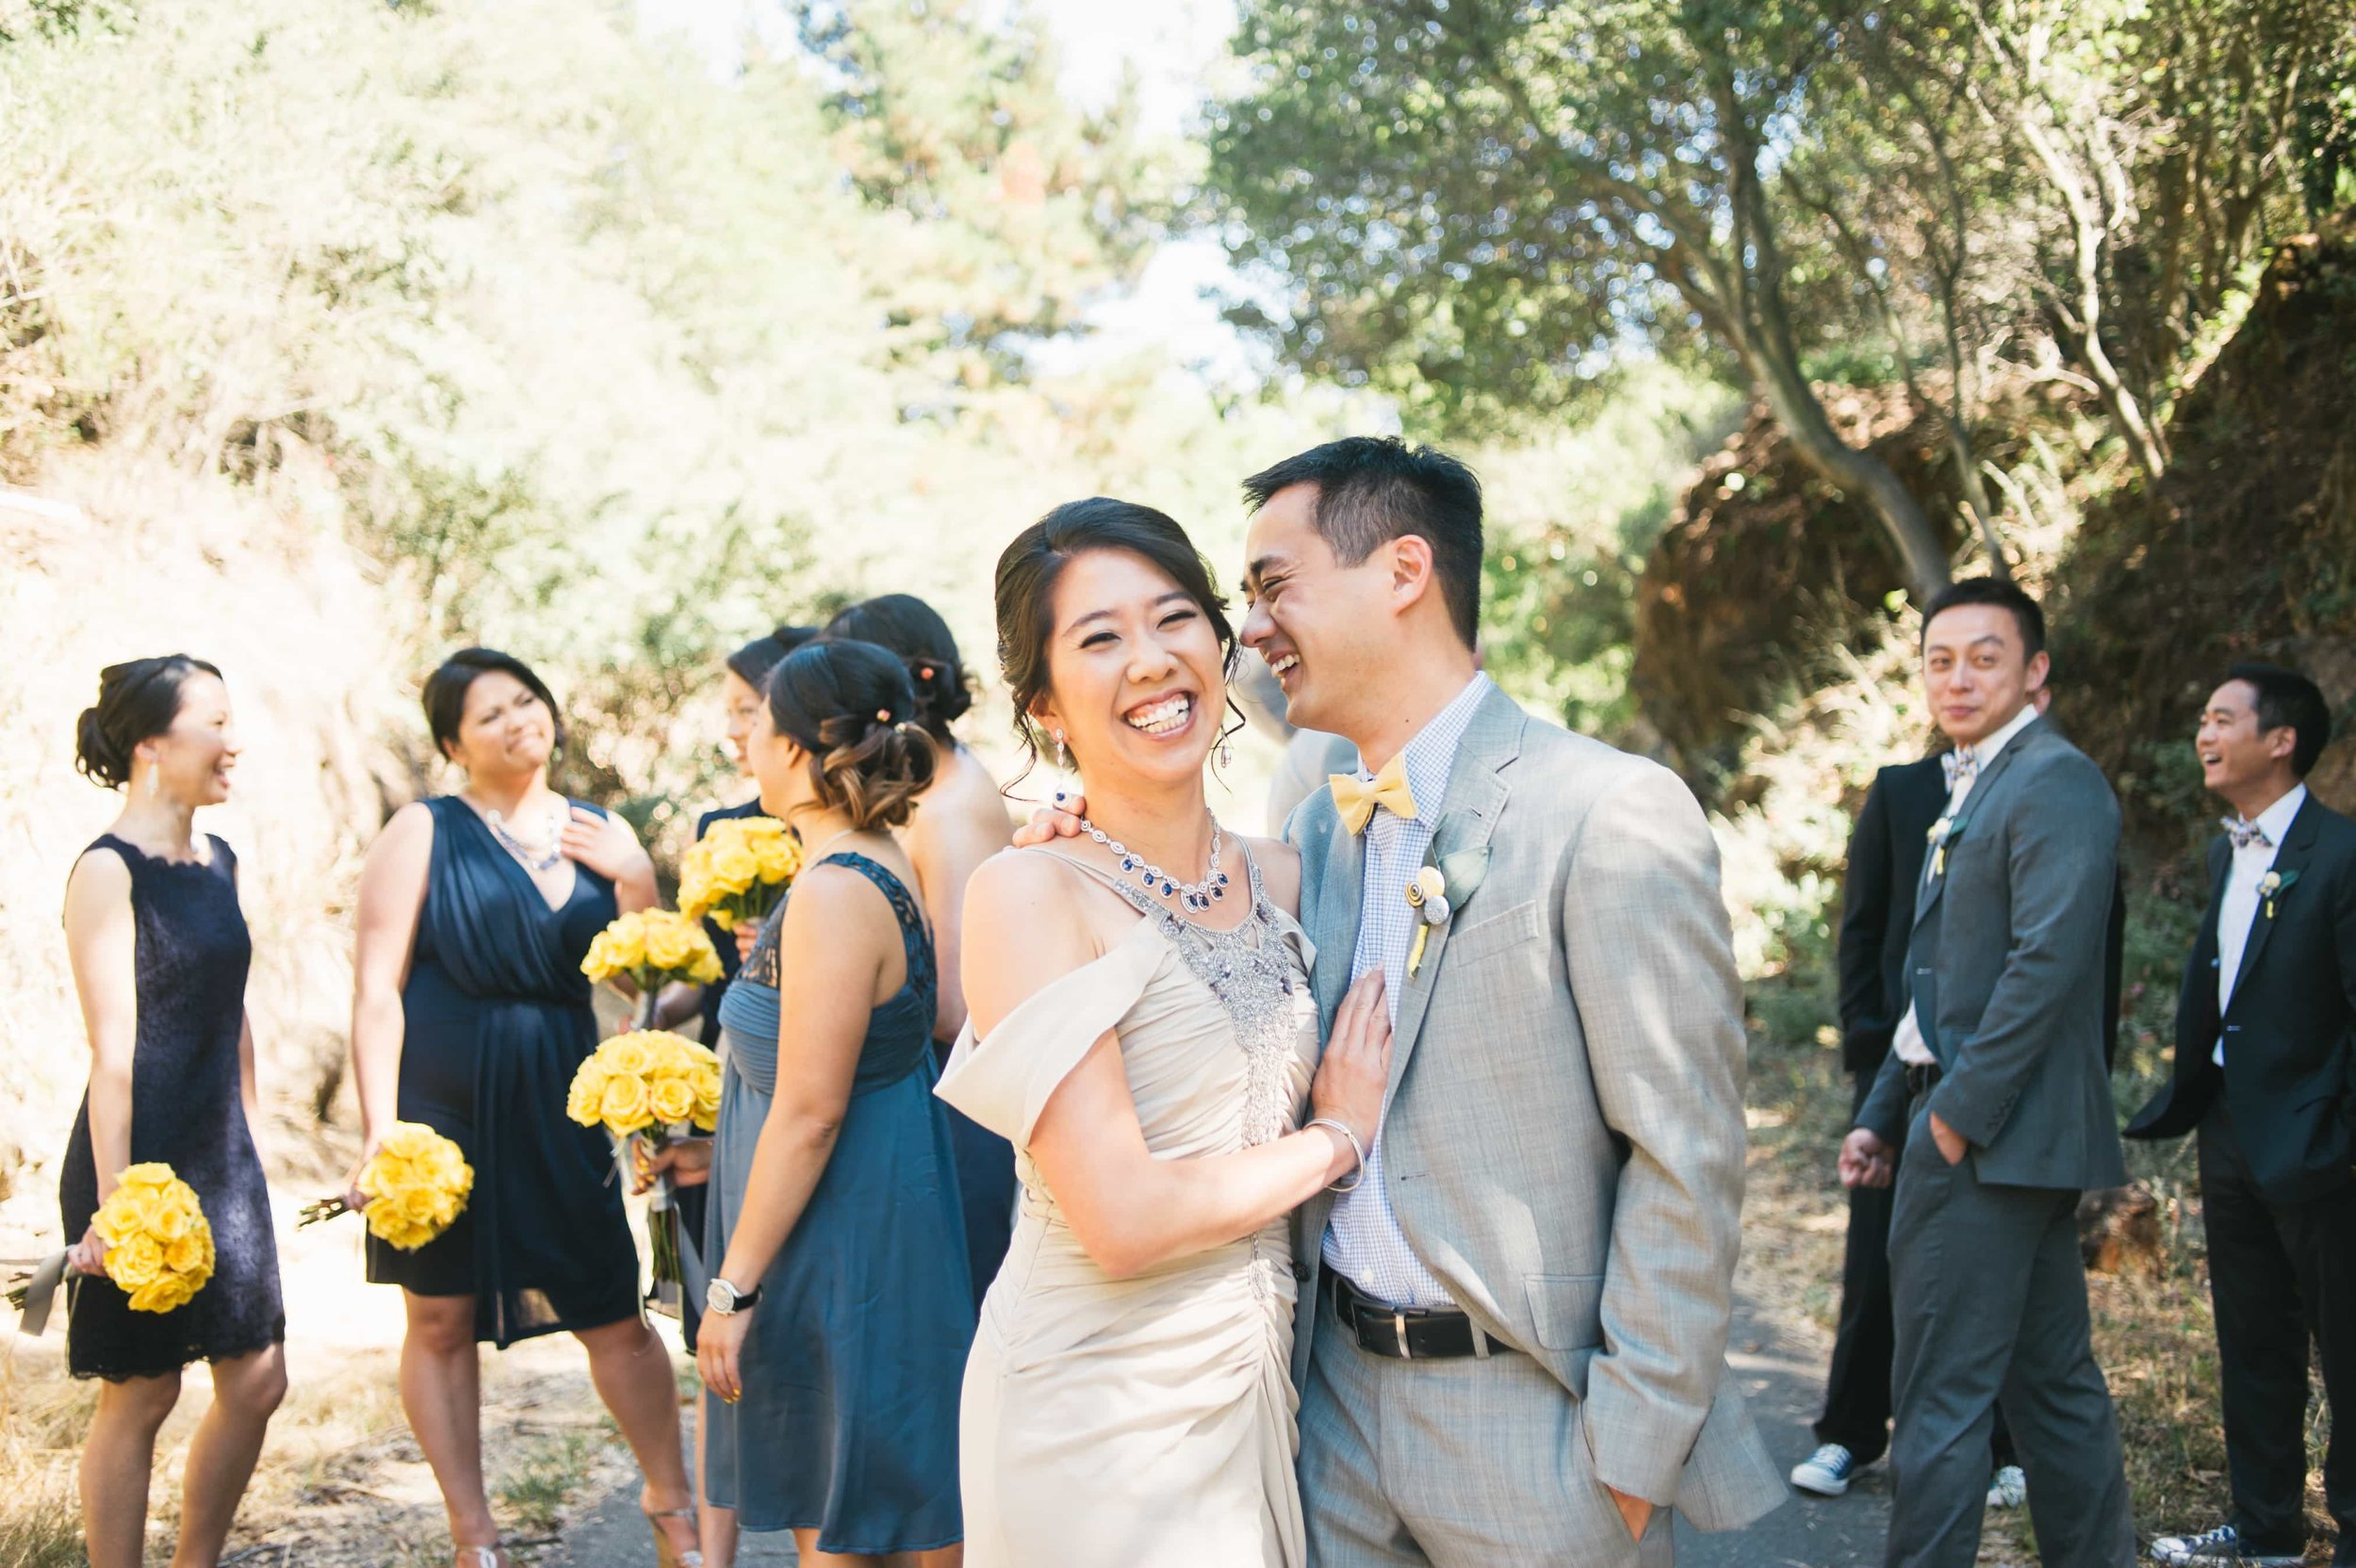 Bride and Groom laughing with wedding party behind them